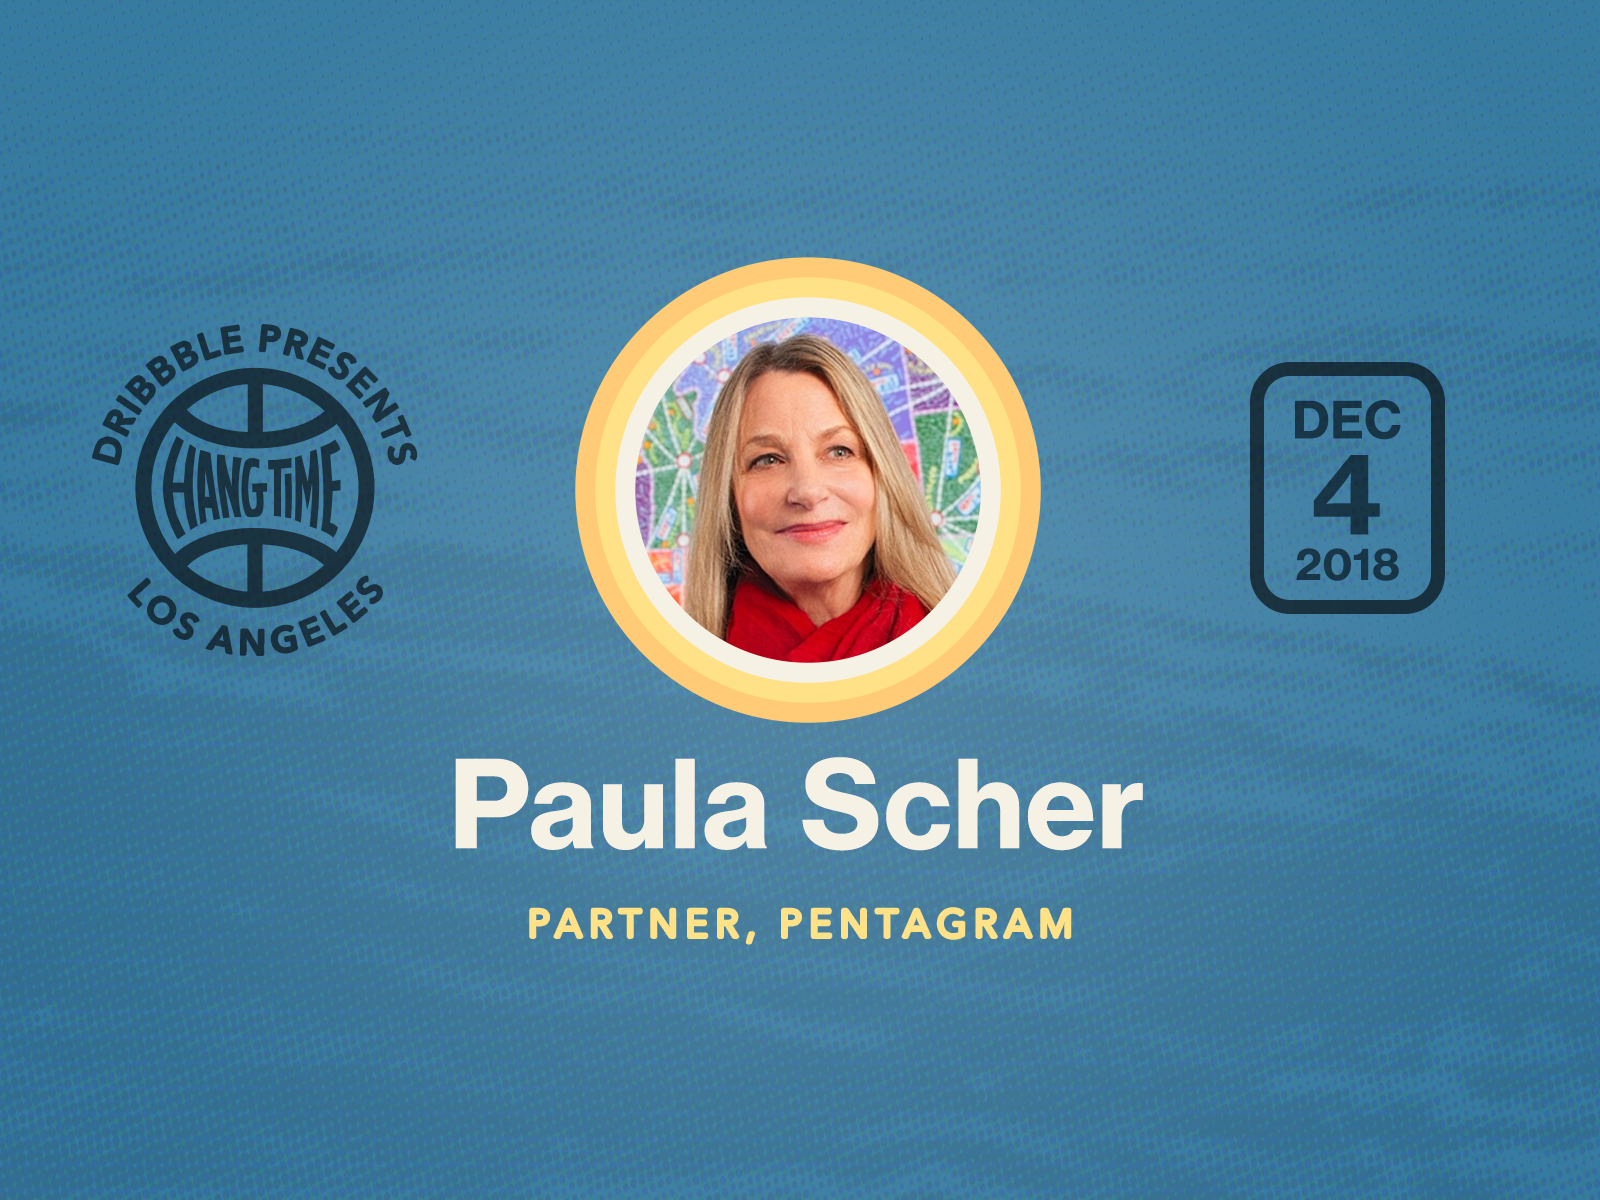 Hang Time LA Speaker Spotlight on Paula Scher